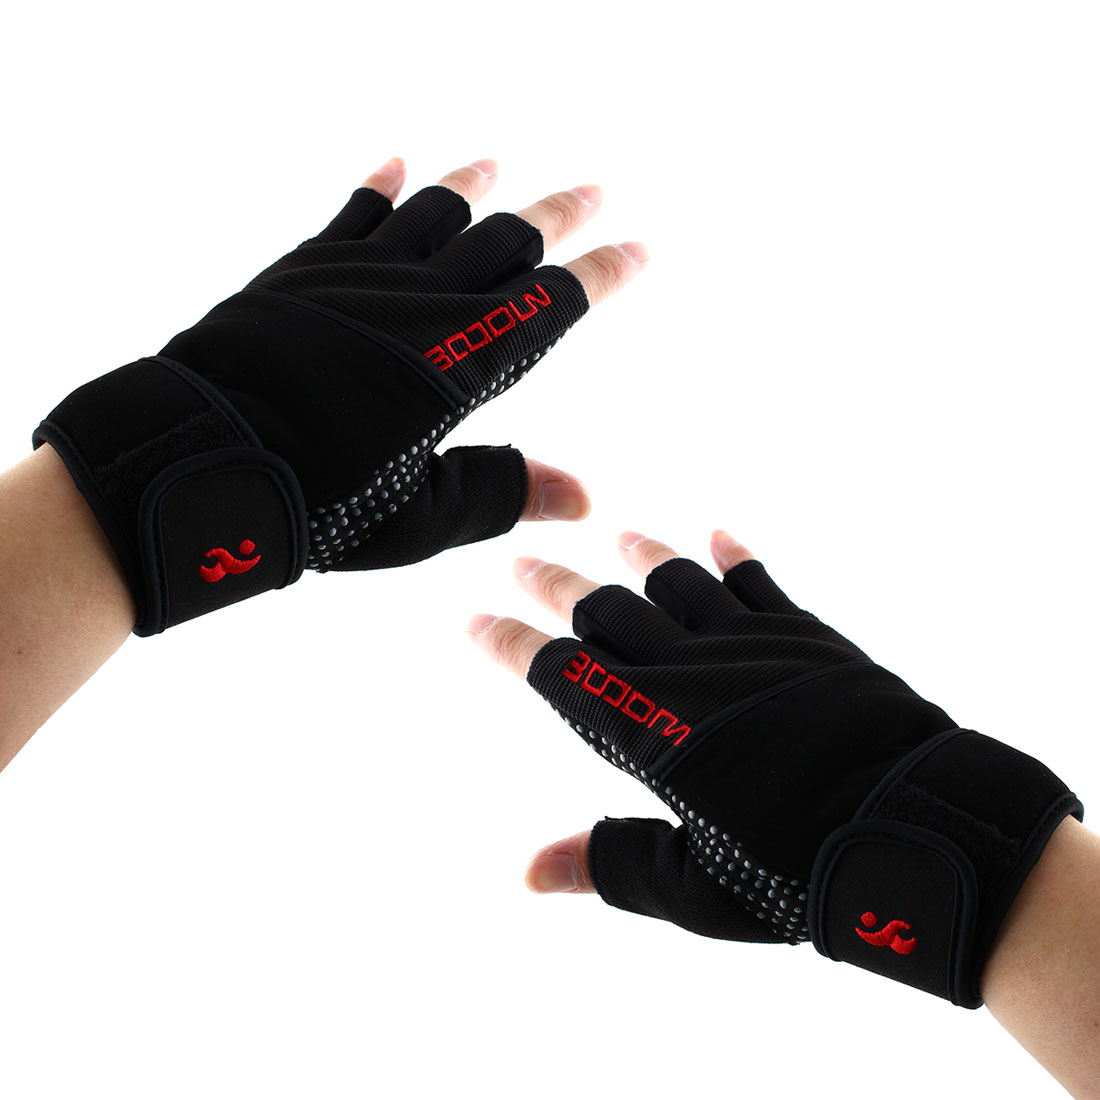 Boodun Authorized Sports Weight Lifting Training Gym Workout Fitness Embroidery Adjustable Anti Slip Half Finger Gloves Red Size S Pair